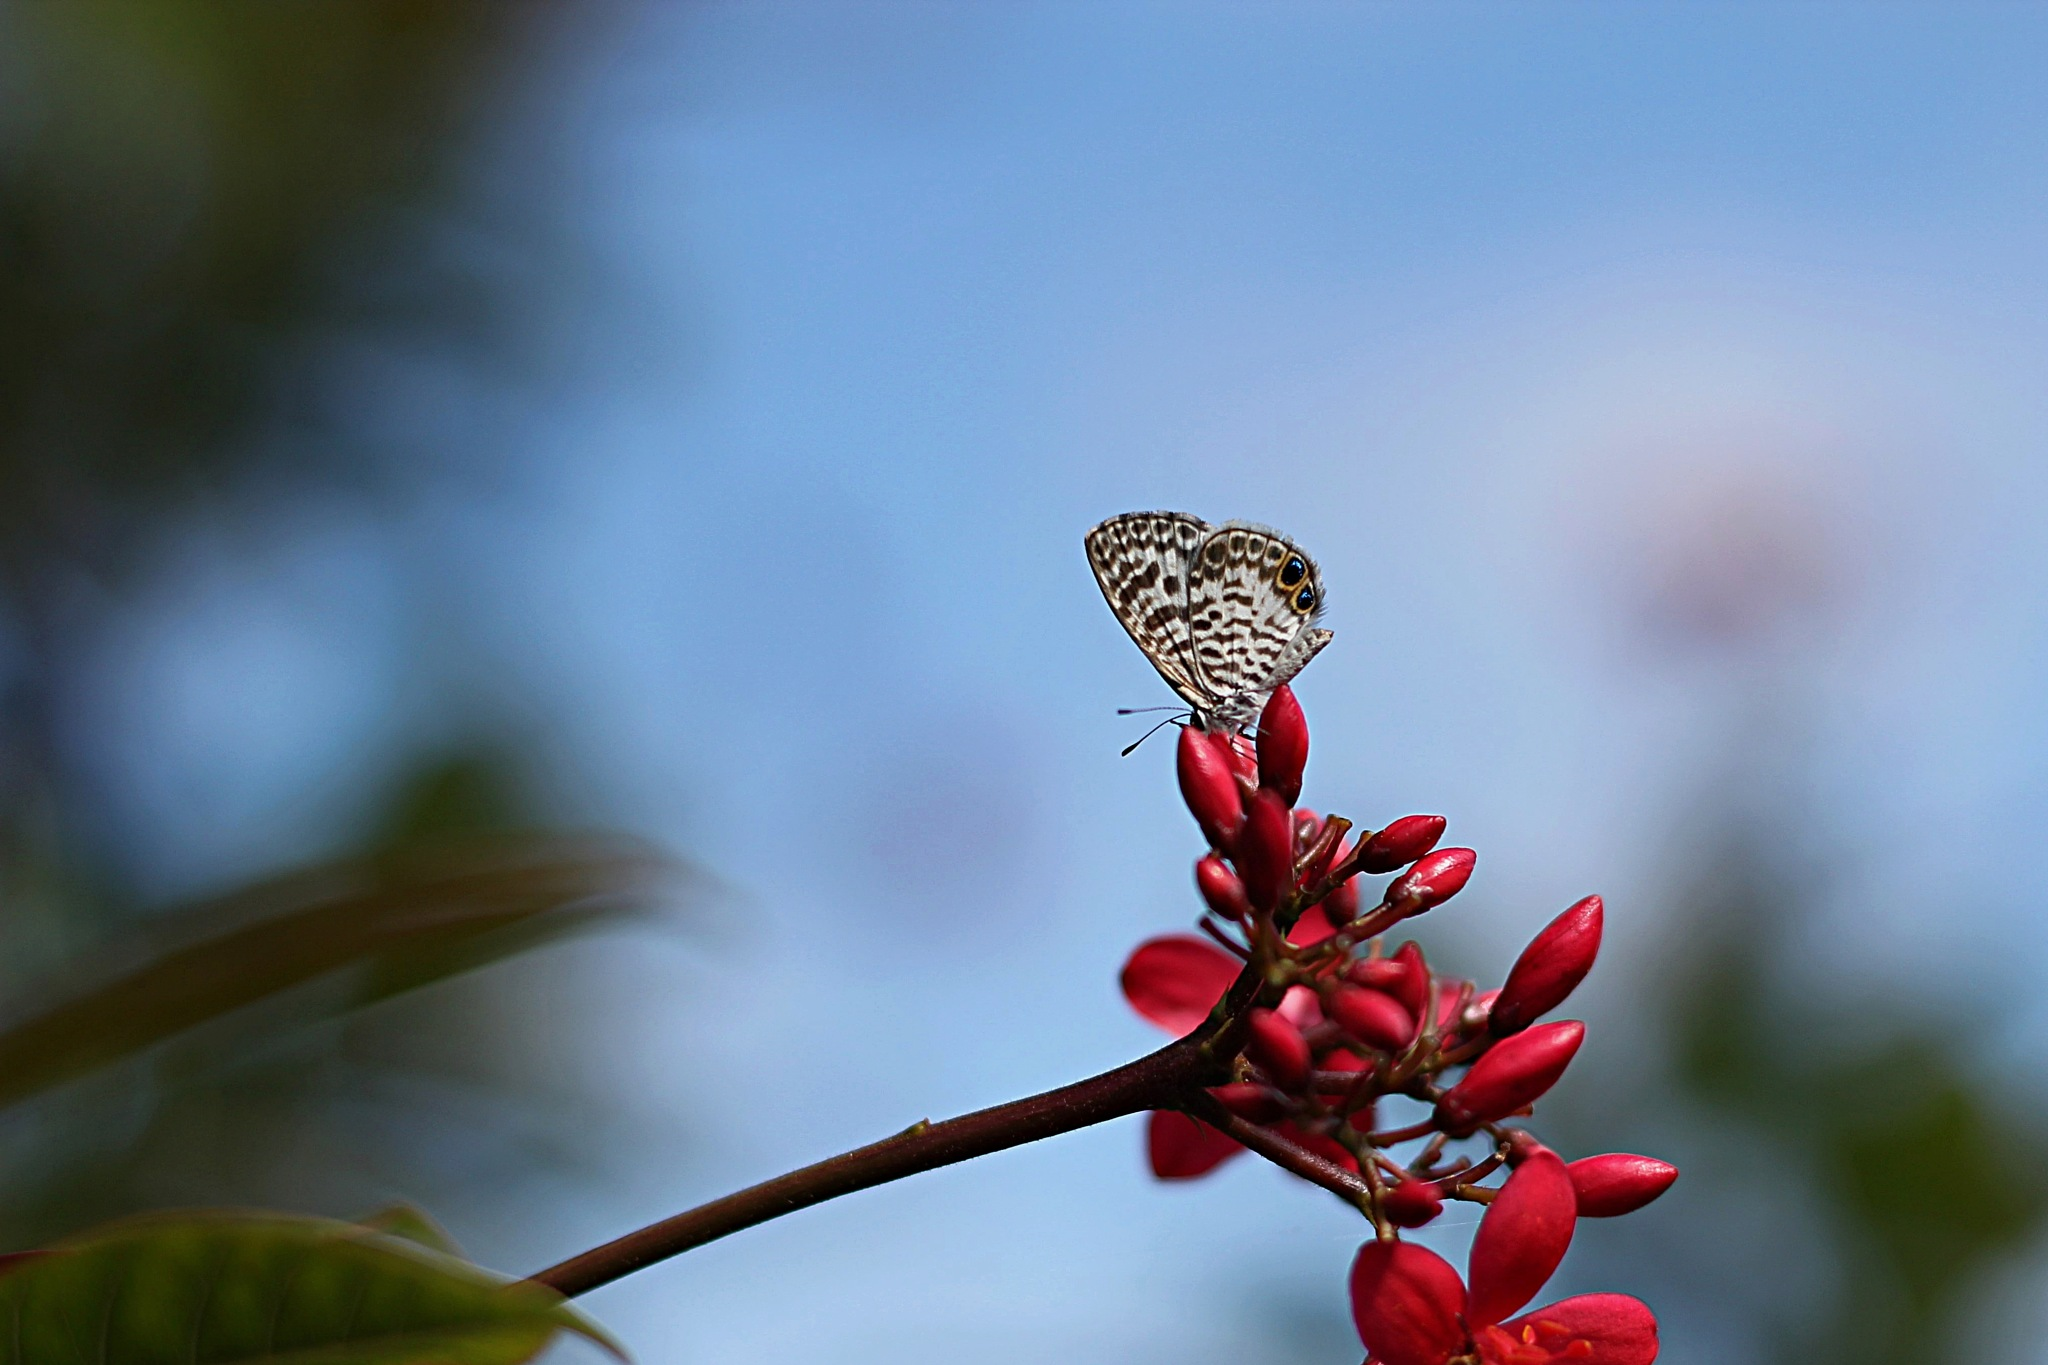 Eastern-Tailed Blue Butterfly by Zohel Mercado